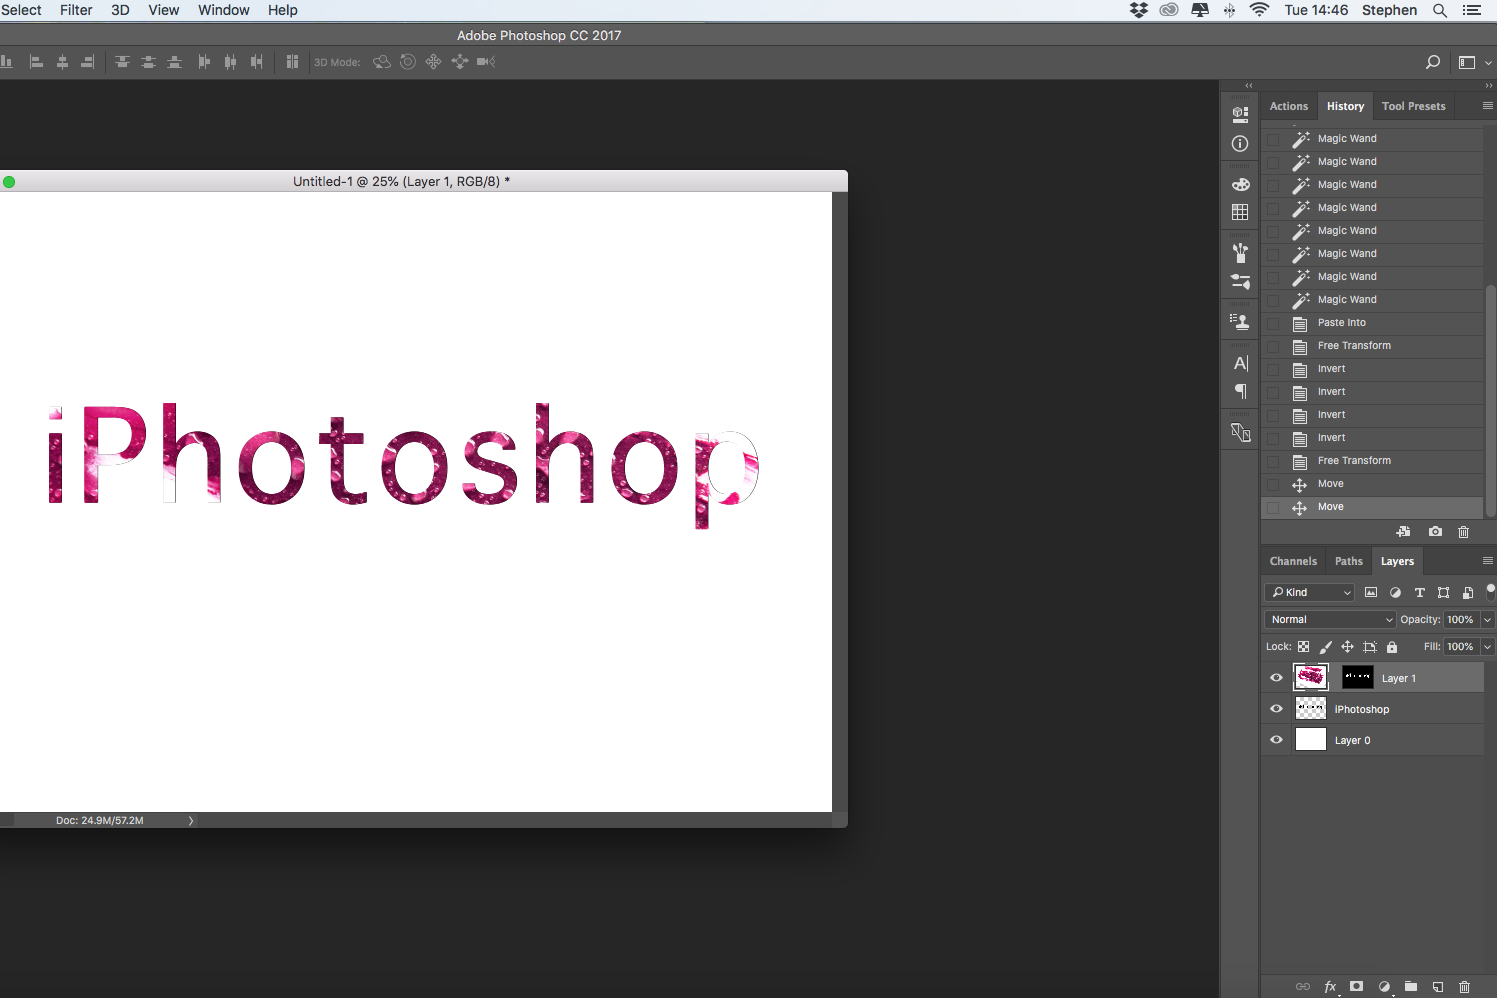 photoshop logo iphotoshop texture pink screen capture editing